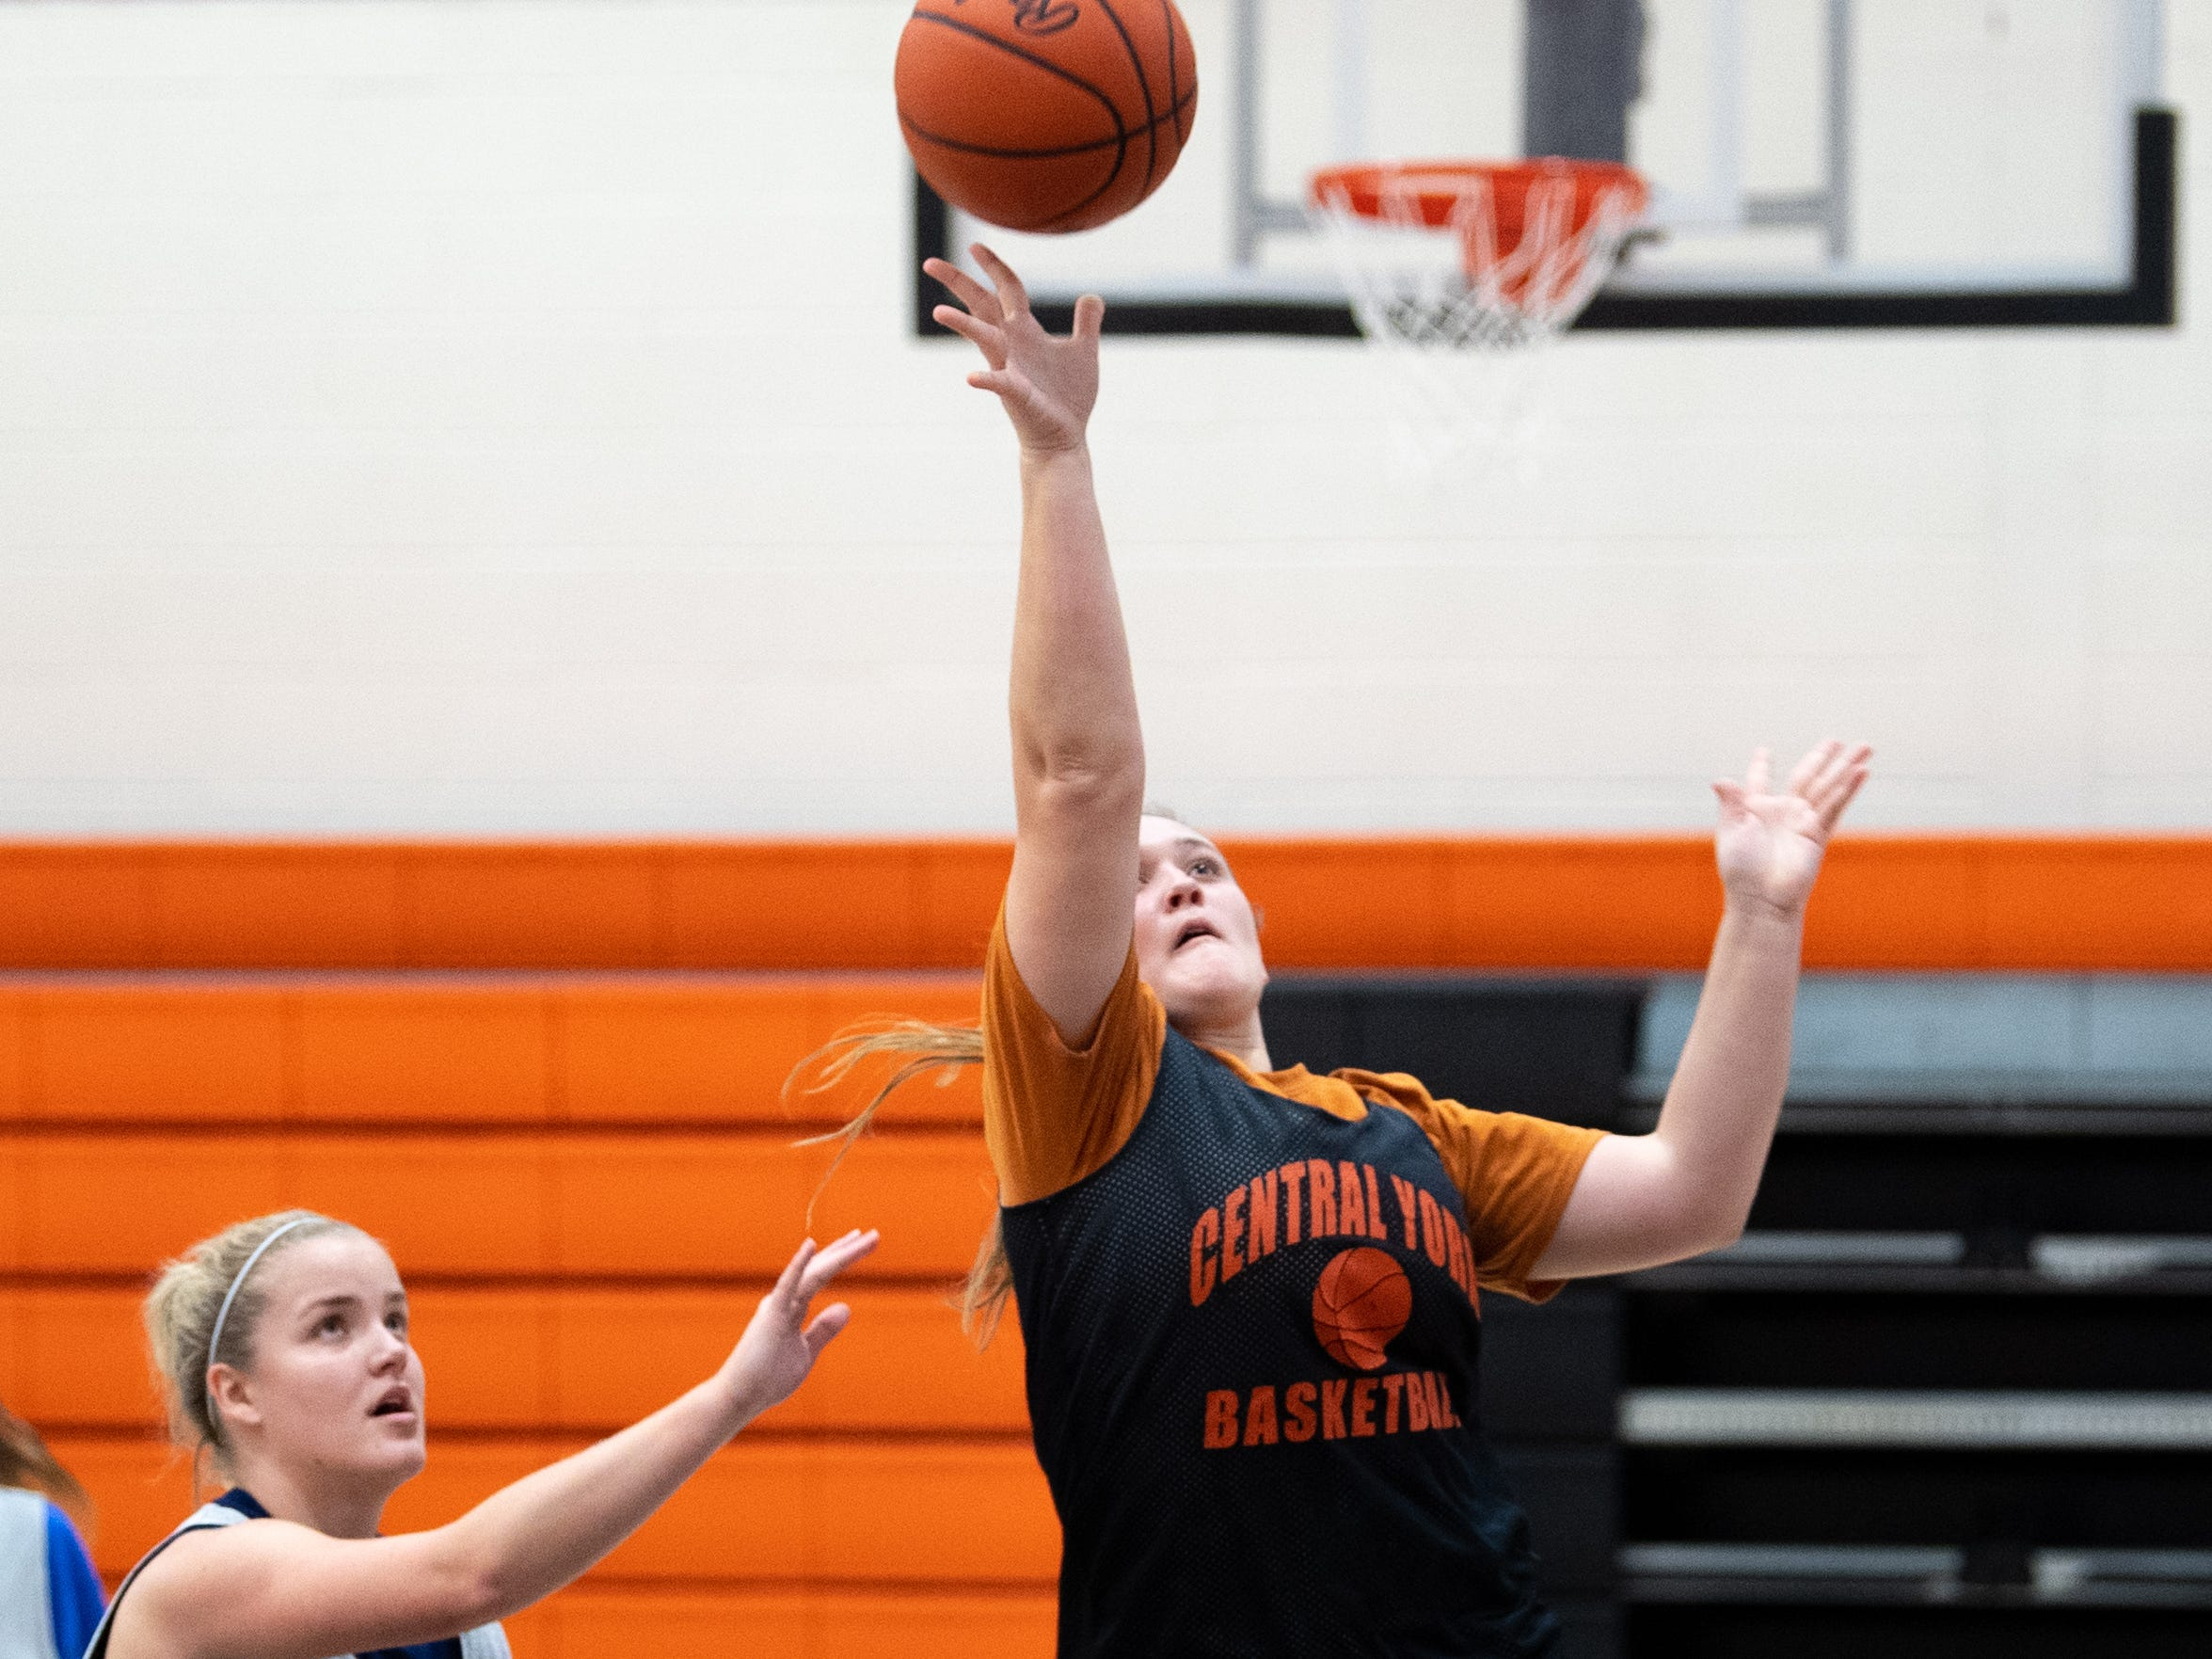 Central York's girls' basketball team scrimmages against each other, Wednesday, November 21, 2018.